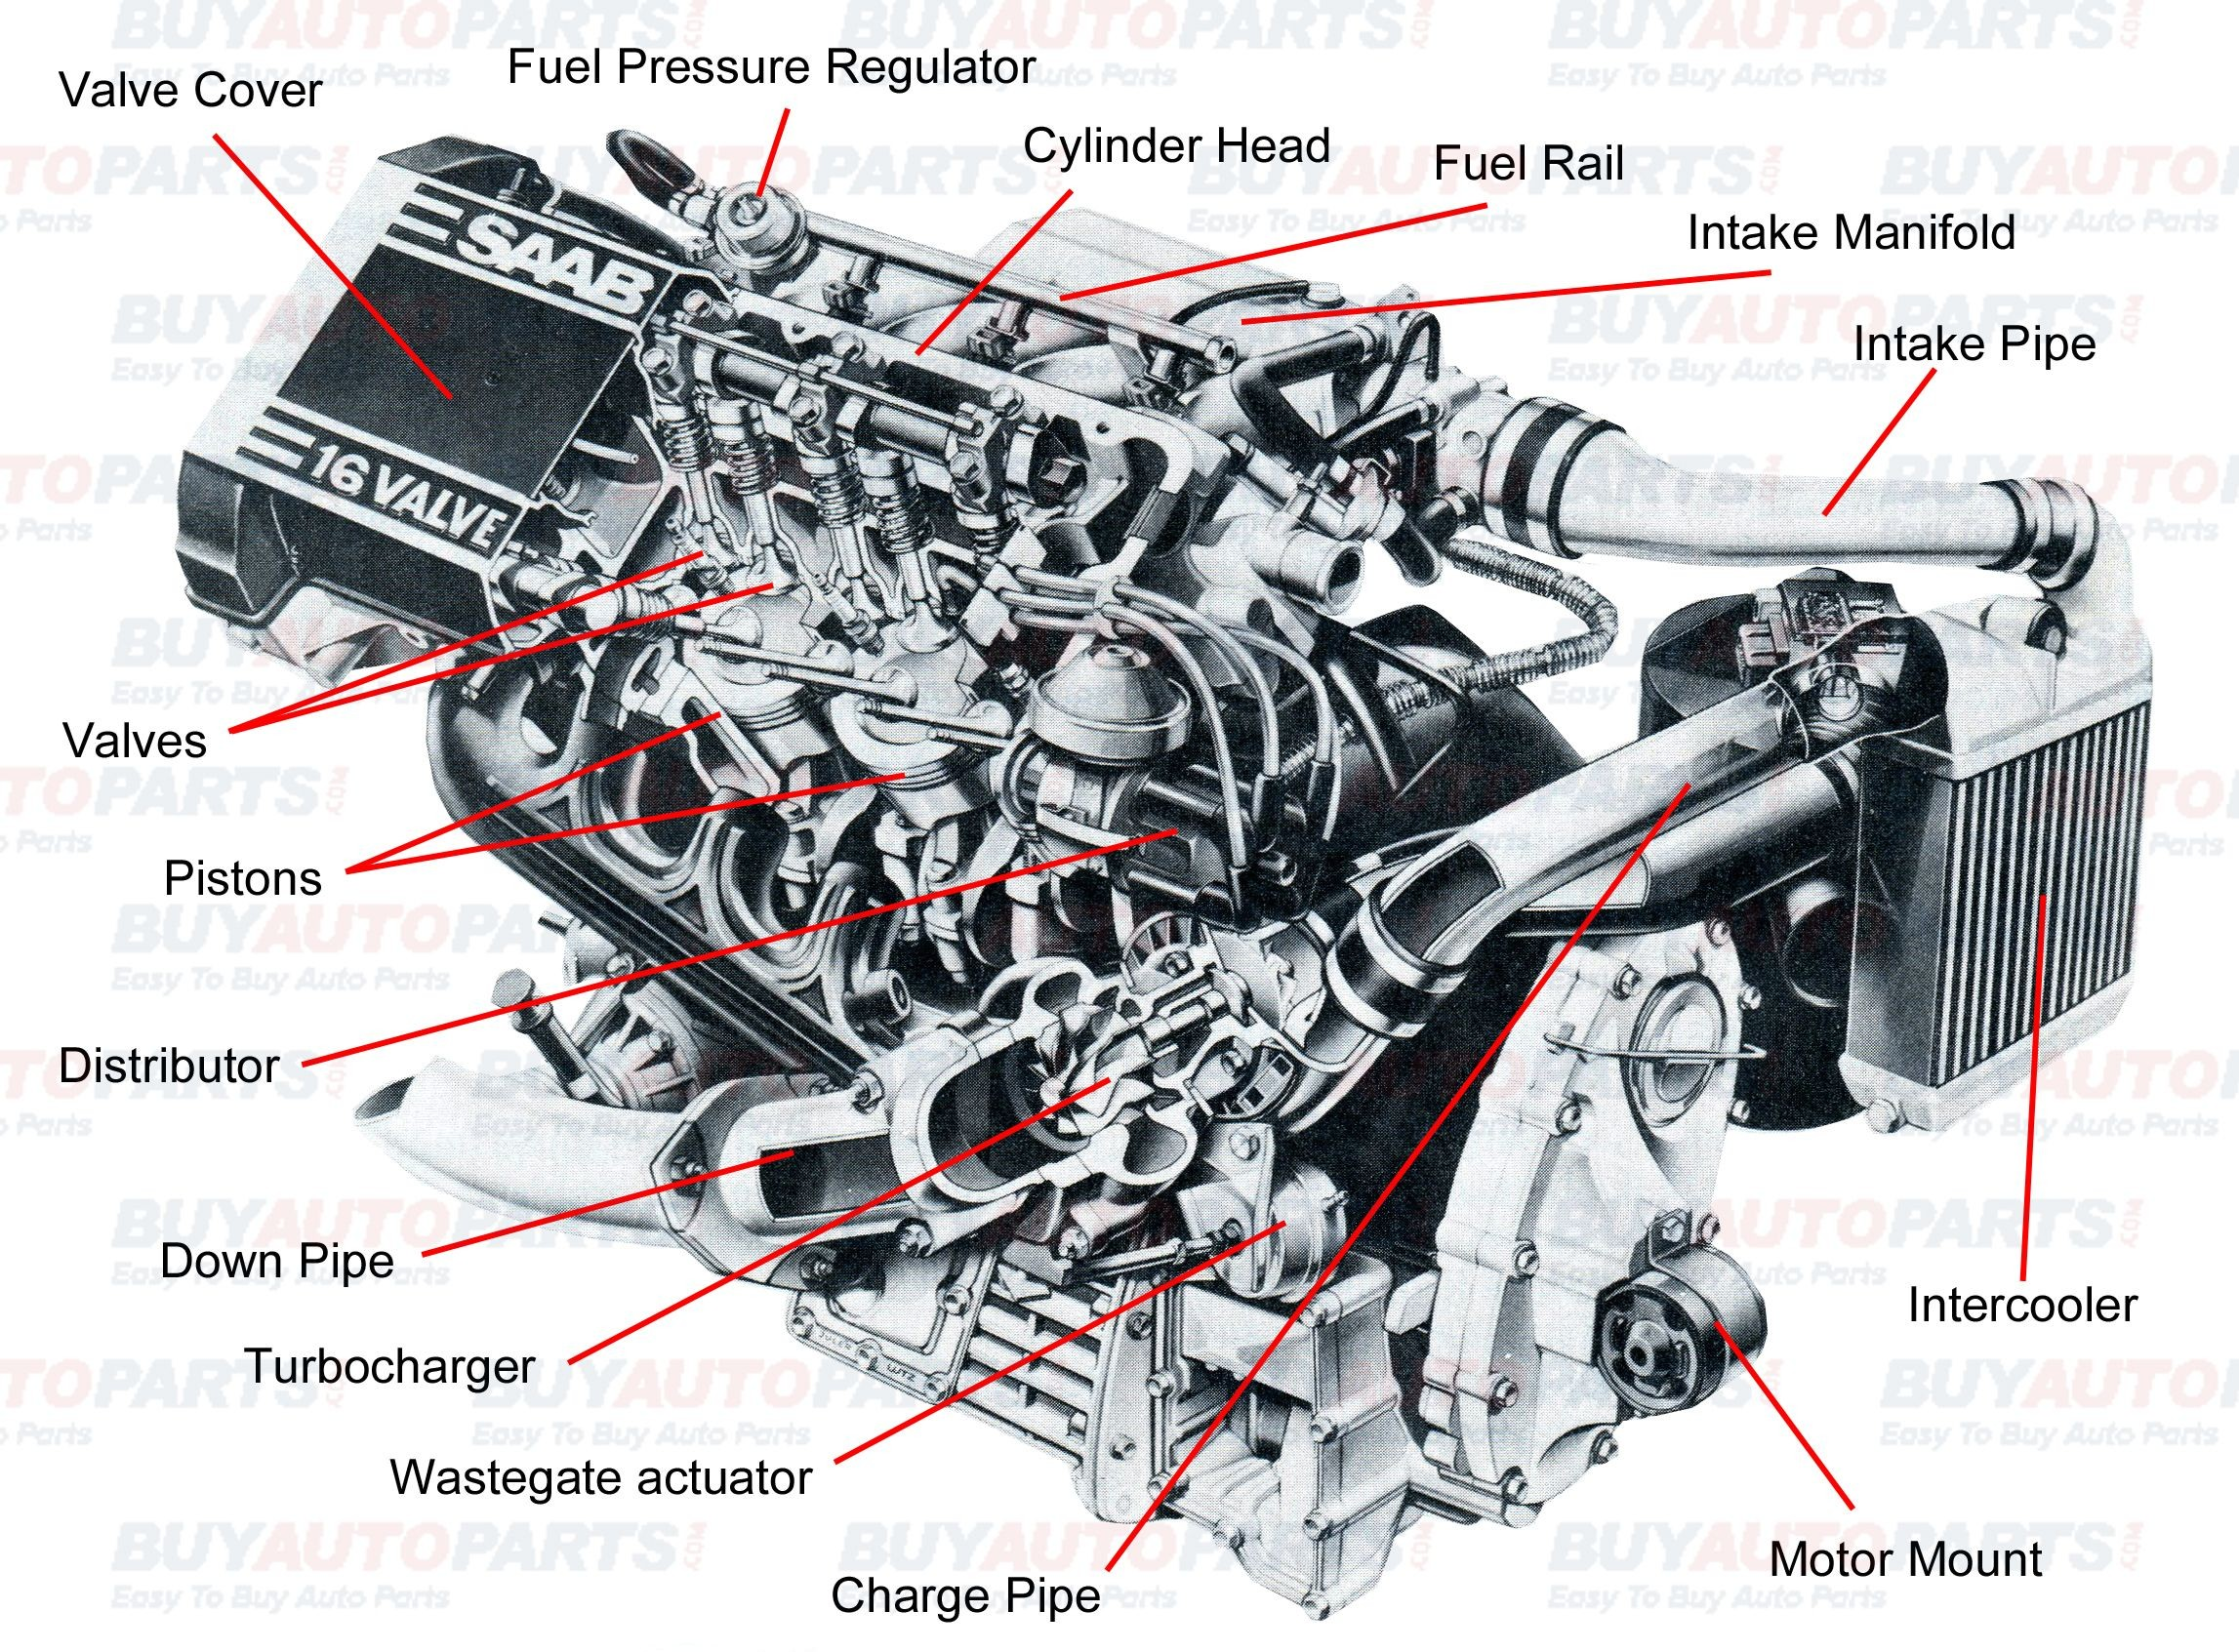 Detailed Diagram Of Car Parts All Internal Bustion Engines Have the Same Basic Ponents the Of Detailed Diagram Of Car Parts